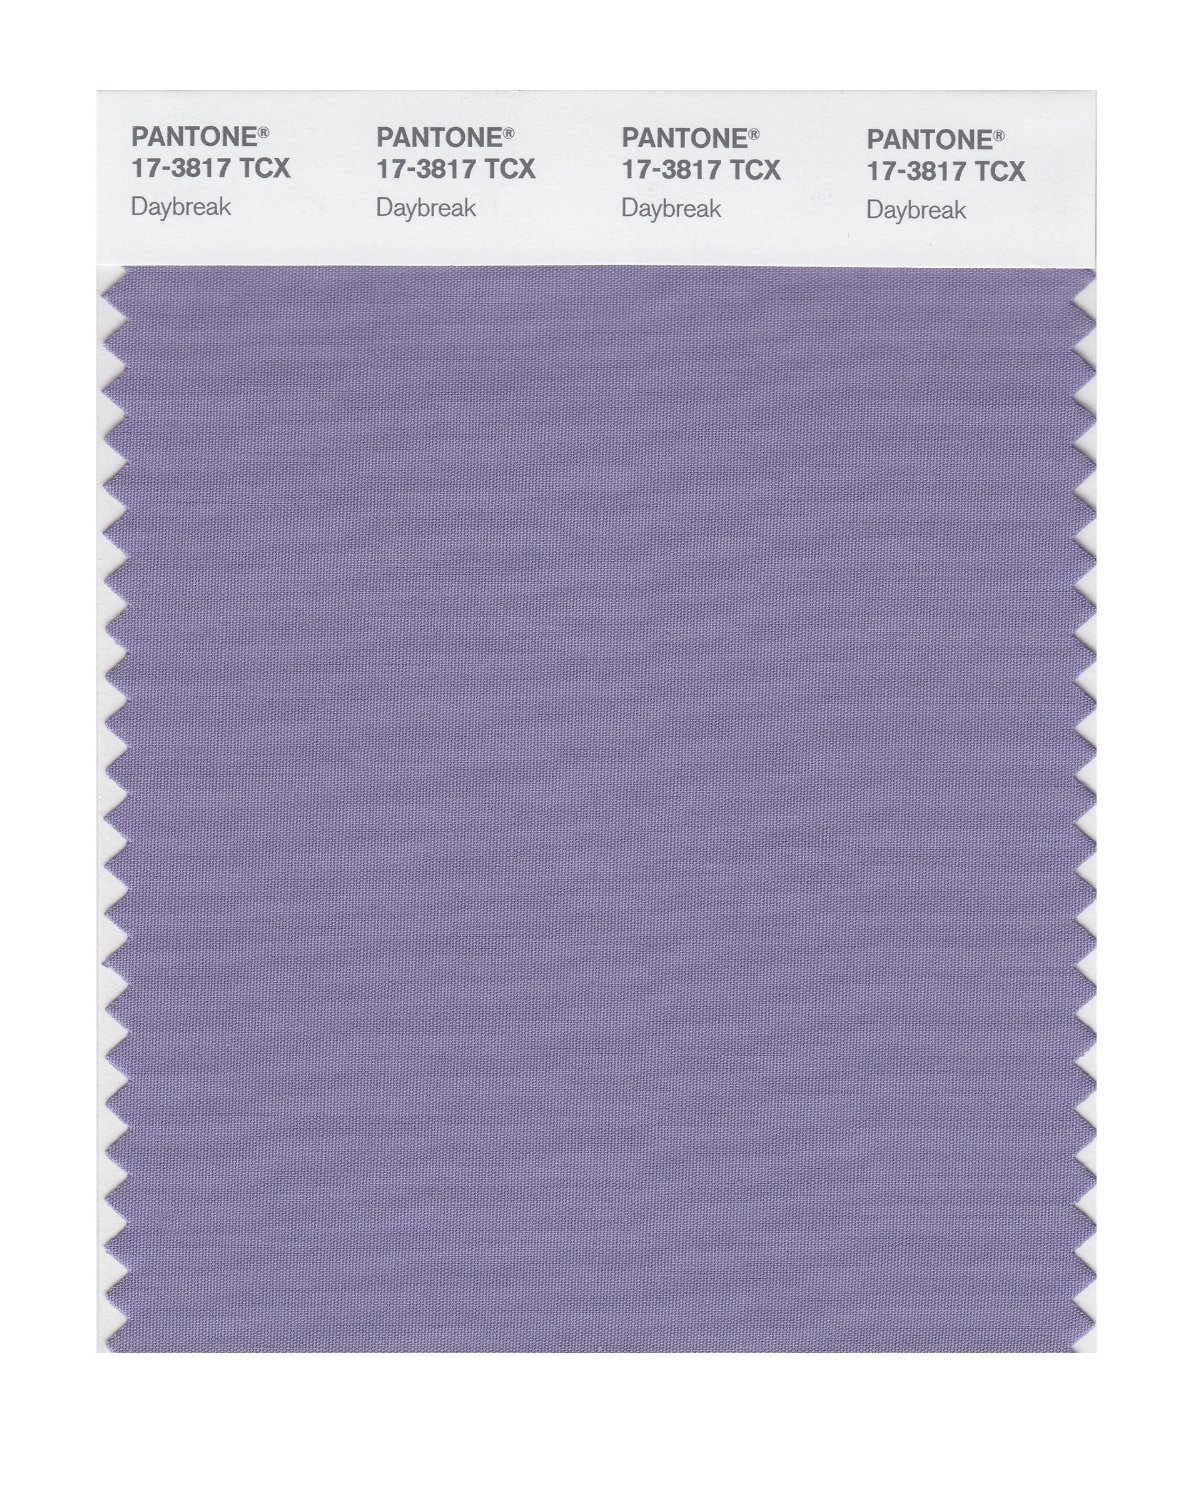 Pantone Smart Swatch 17-3817 Daybreak